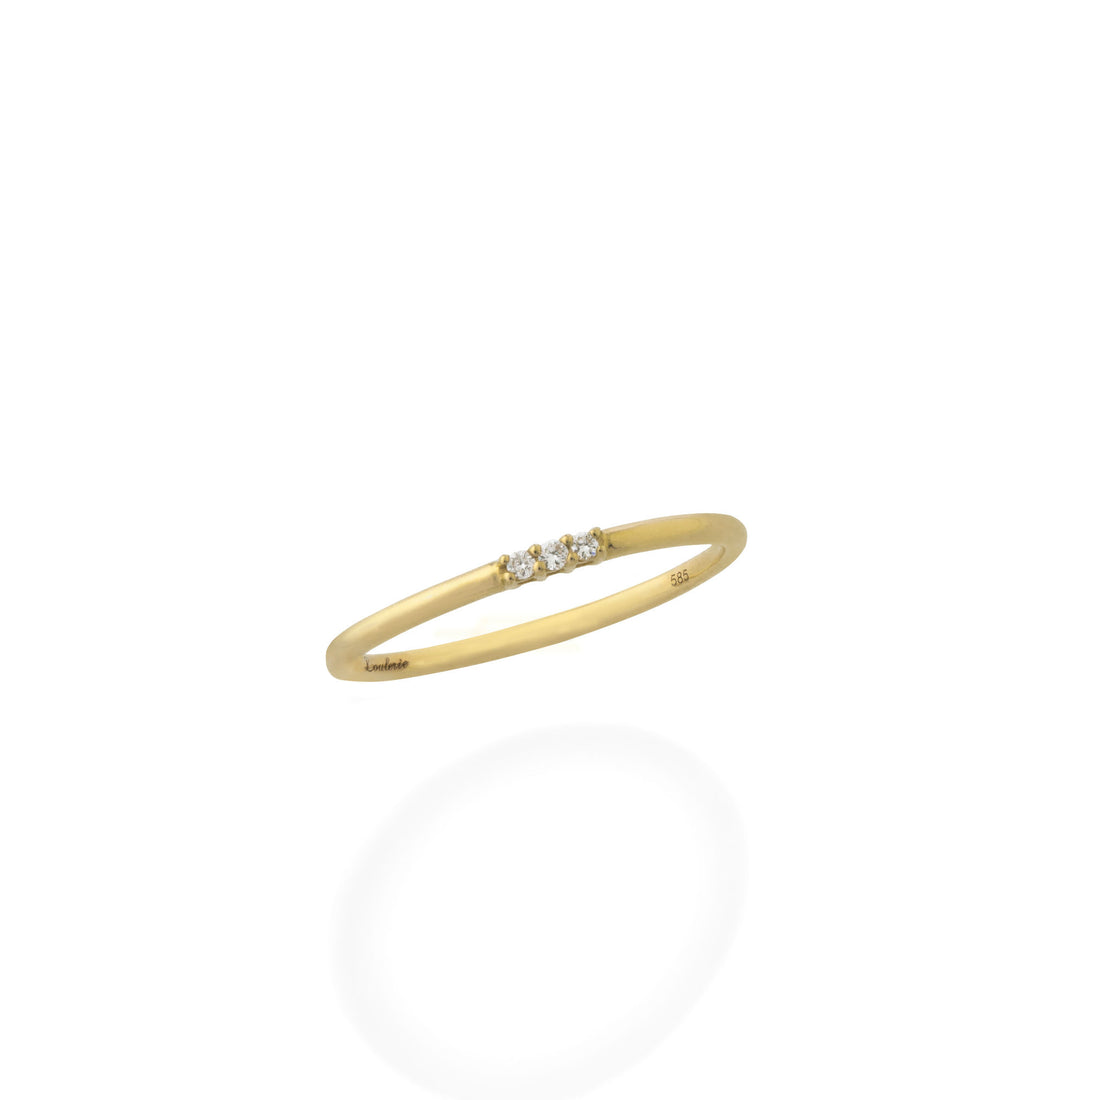 LOULERIE 3 DIAMOND YELLOW GOLD RING